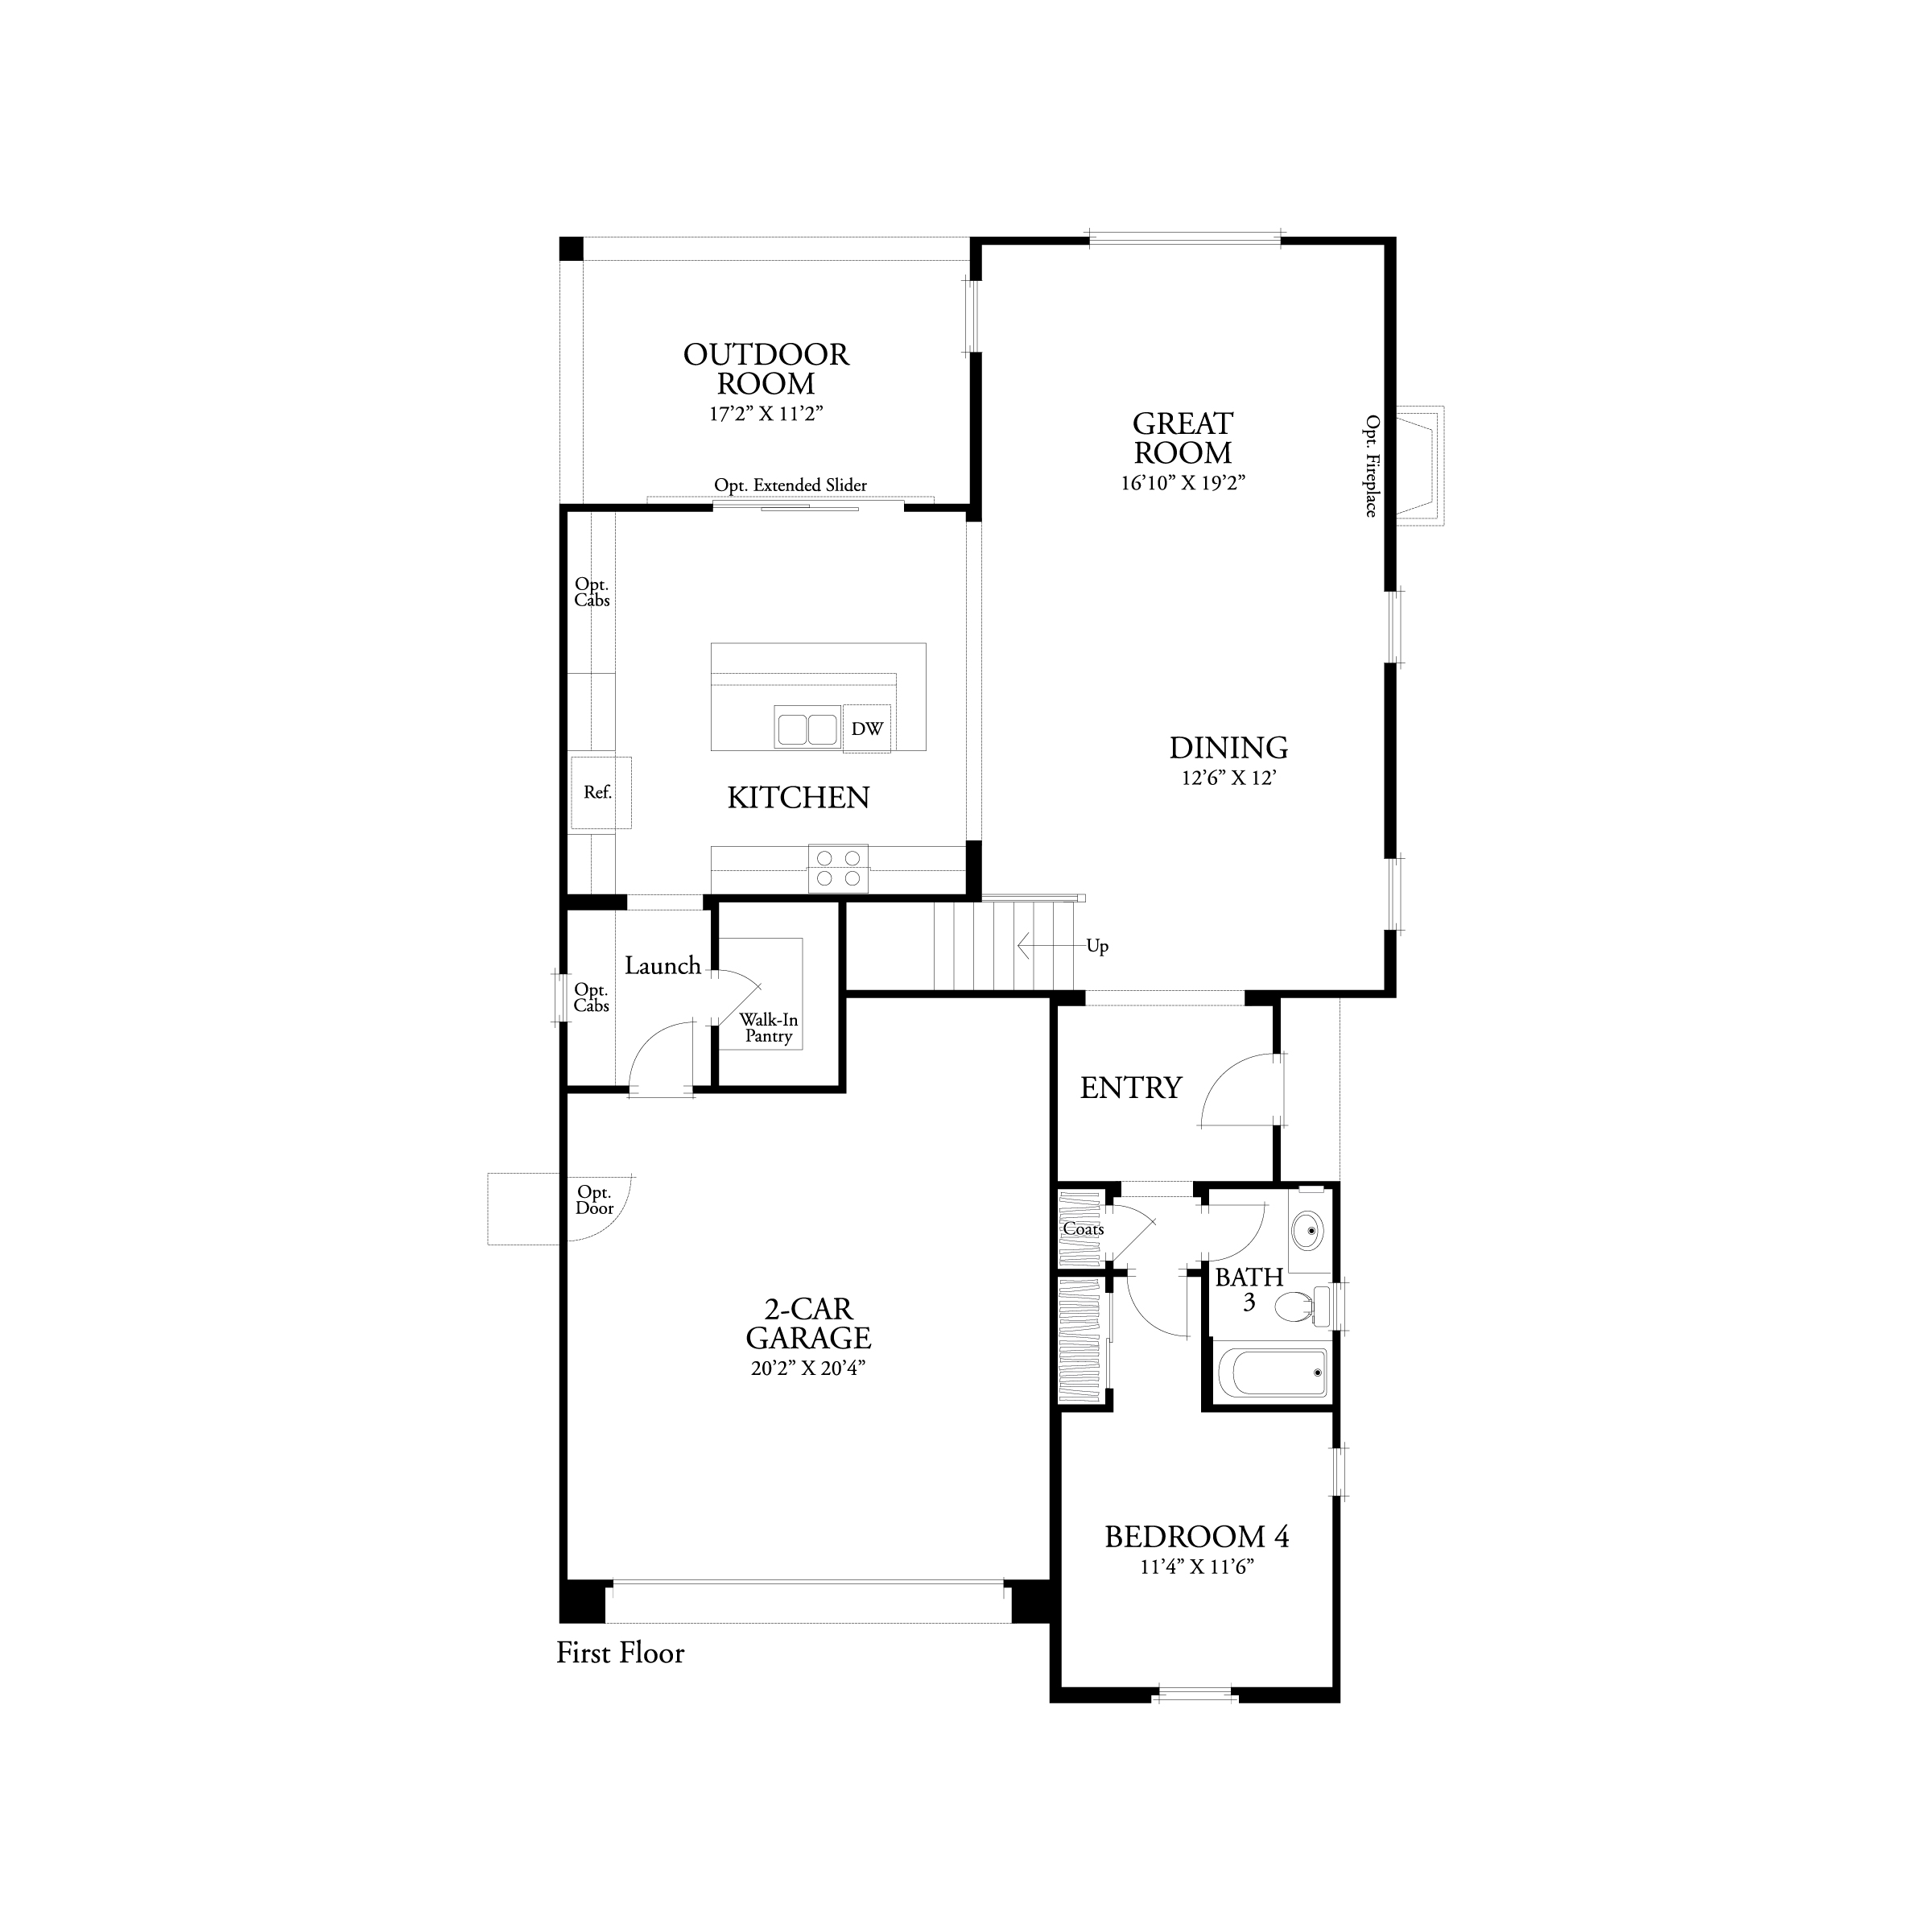 First floor residence 2 floor plan | Marigold at New Haven in Ontario Ranch, CA | Brookfield Residential